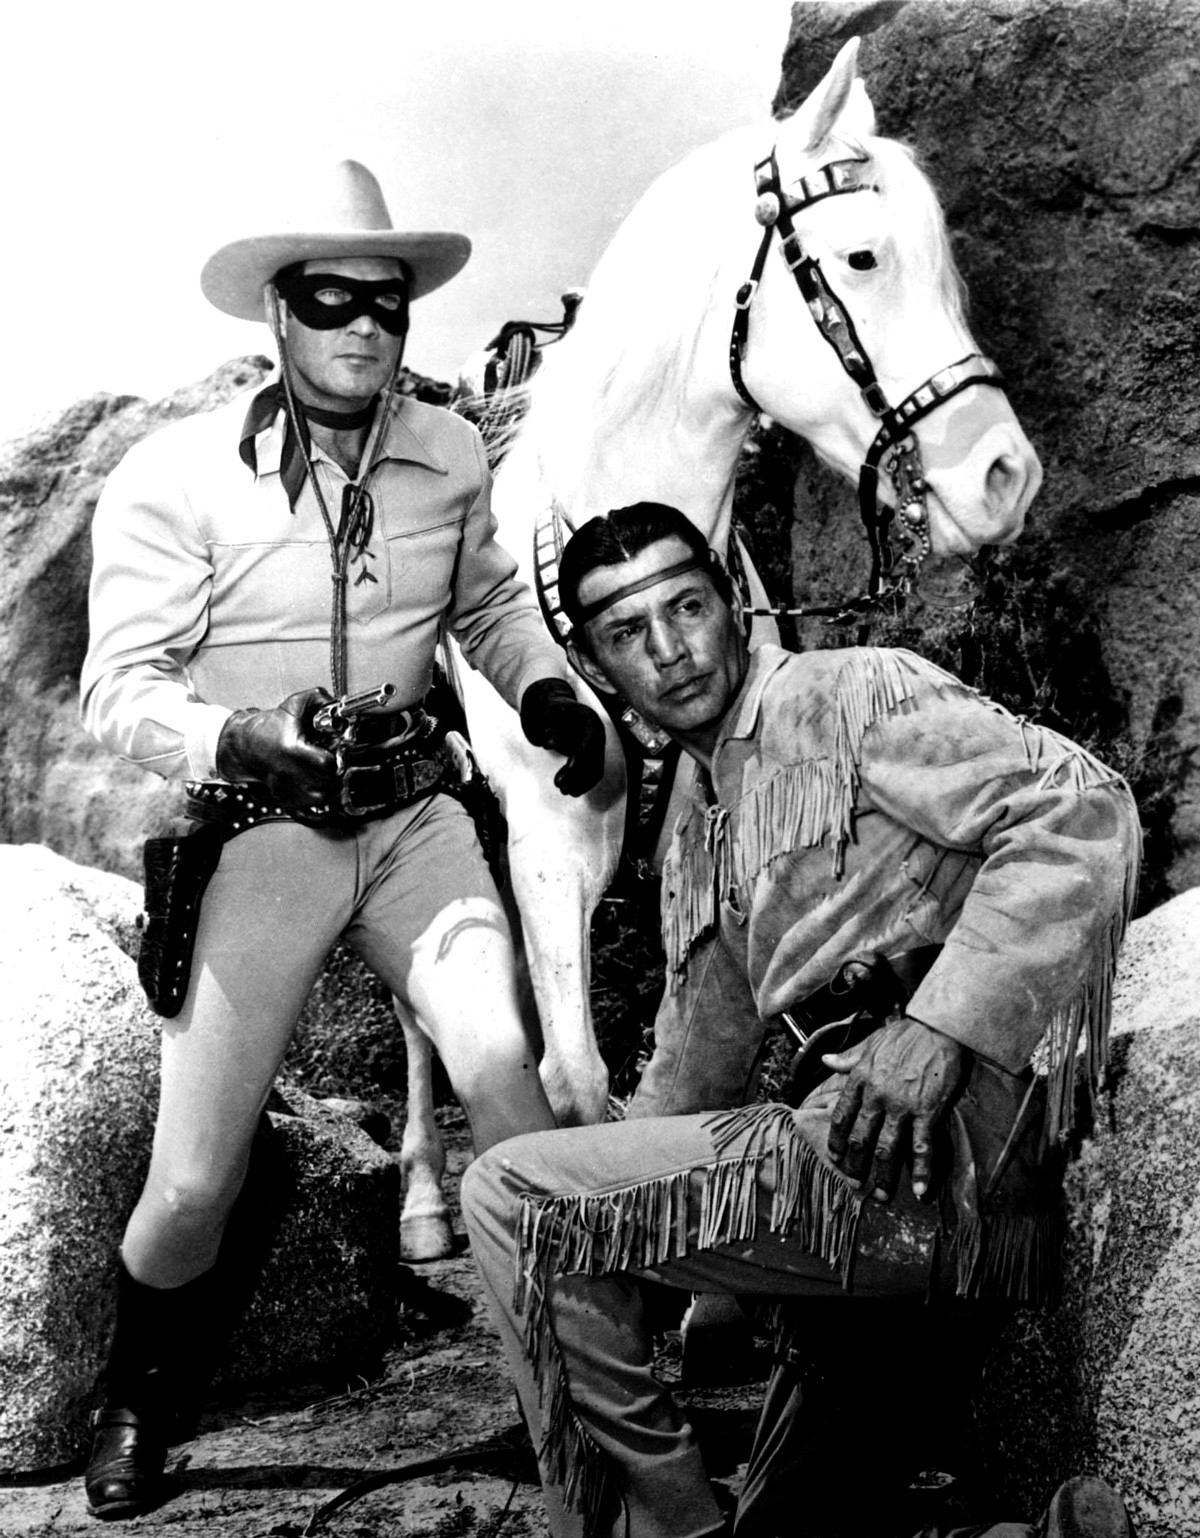 """Among the items included in the """"appropriation window"""" is a photo of the Lone Ranger and Tonto."""